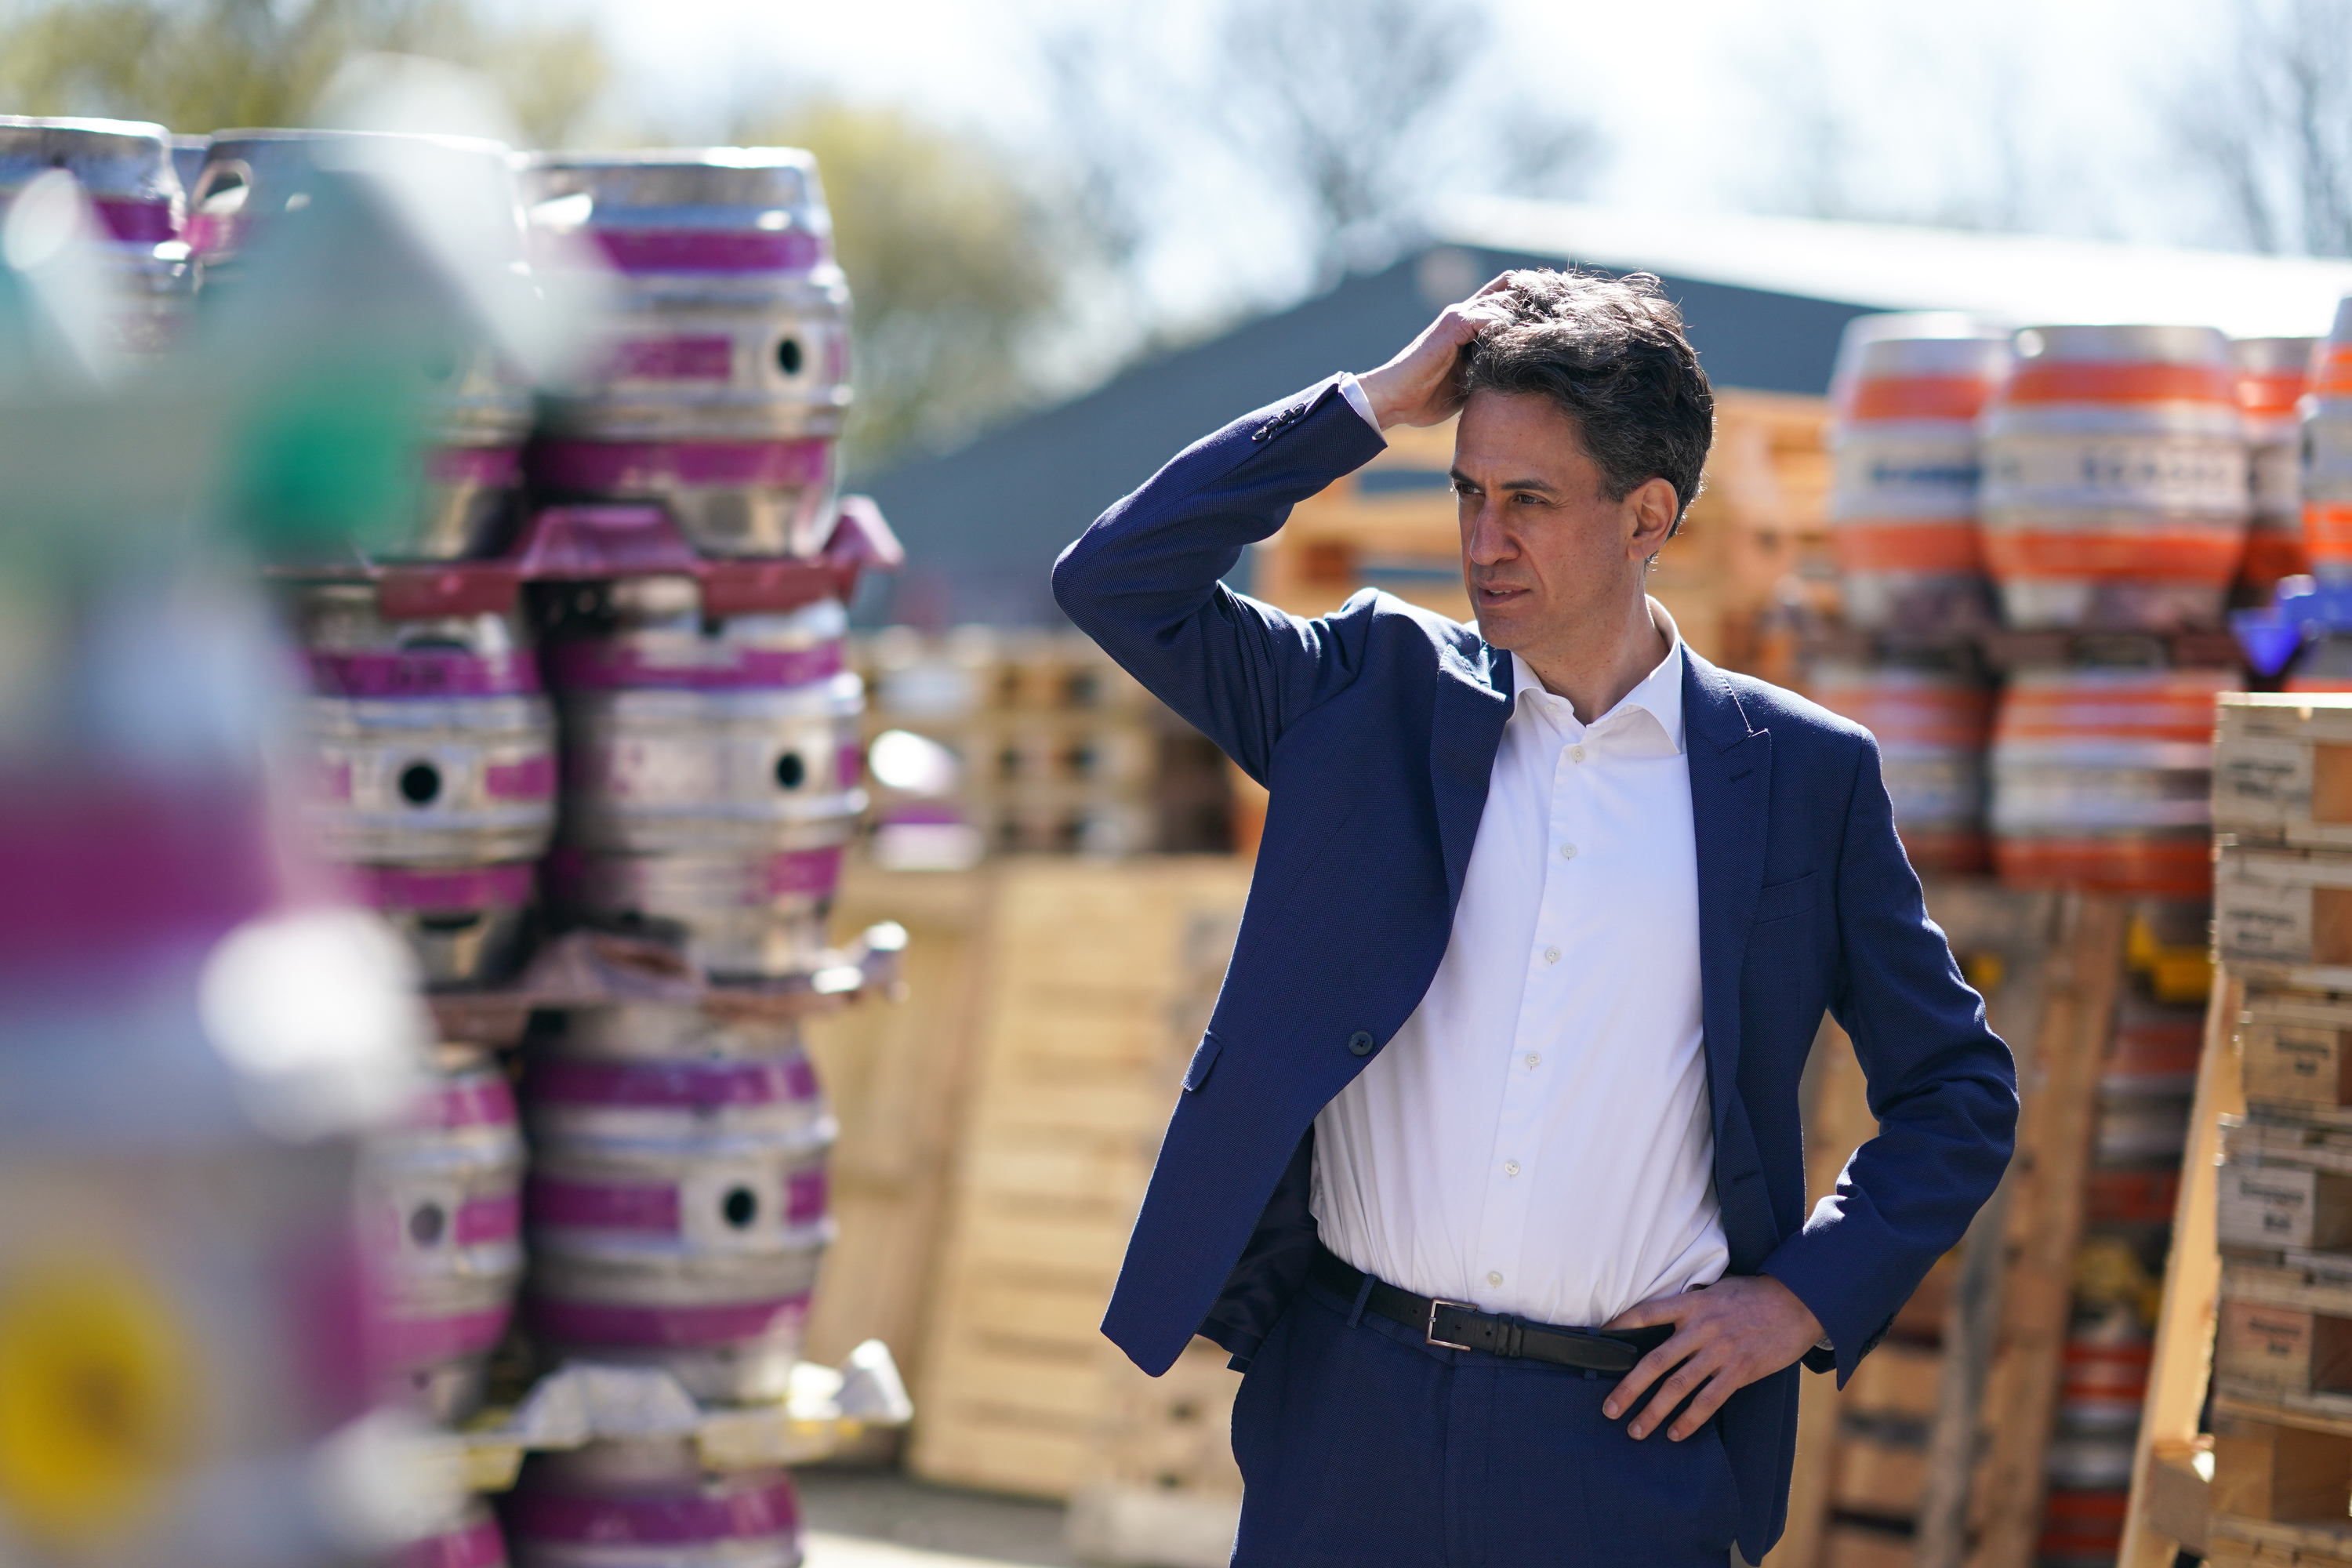 <p>Ed Miliband, Shadow Secretary of State for Business, Energy and Industrial Strategy visits the Ilkley brewery, in Ilkley West Yorkshire, to show support for Tracy Brabin as she campaigns to become the Labour candidate in the West Yorkshire mayoral election. Picture date: Thursday April 22, 2021.</p>